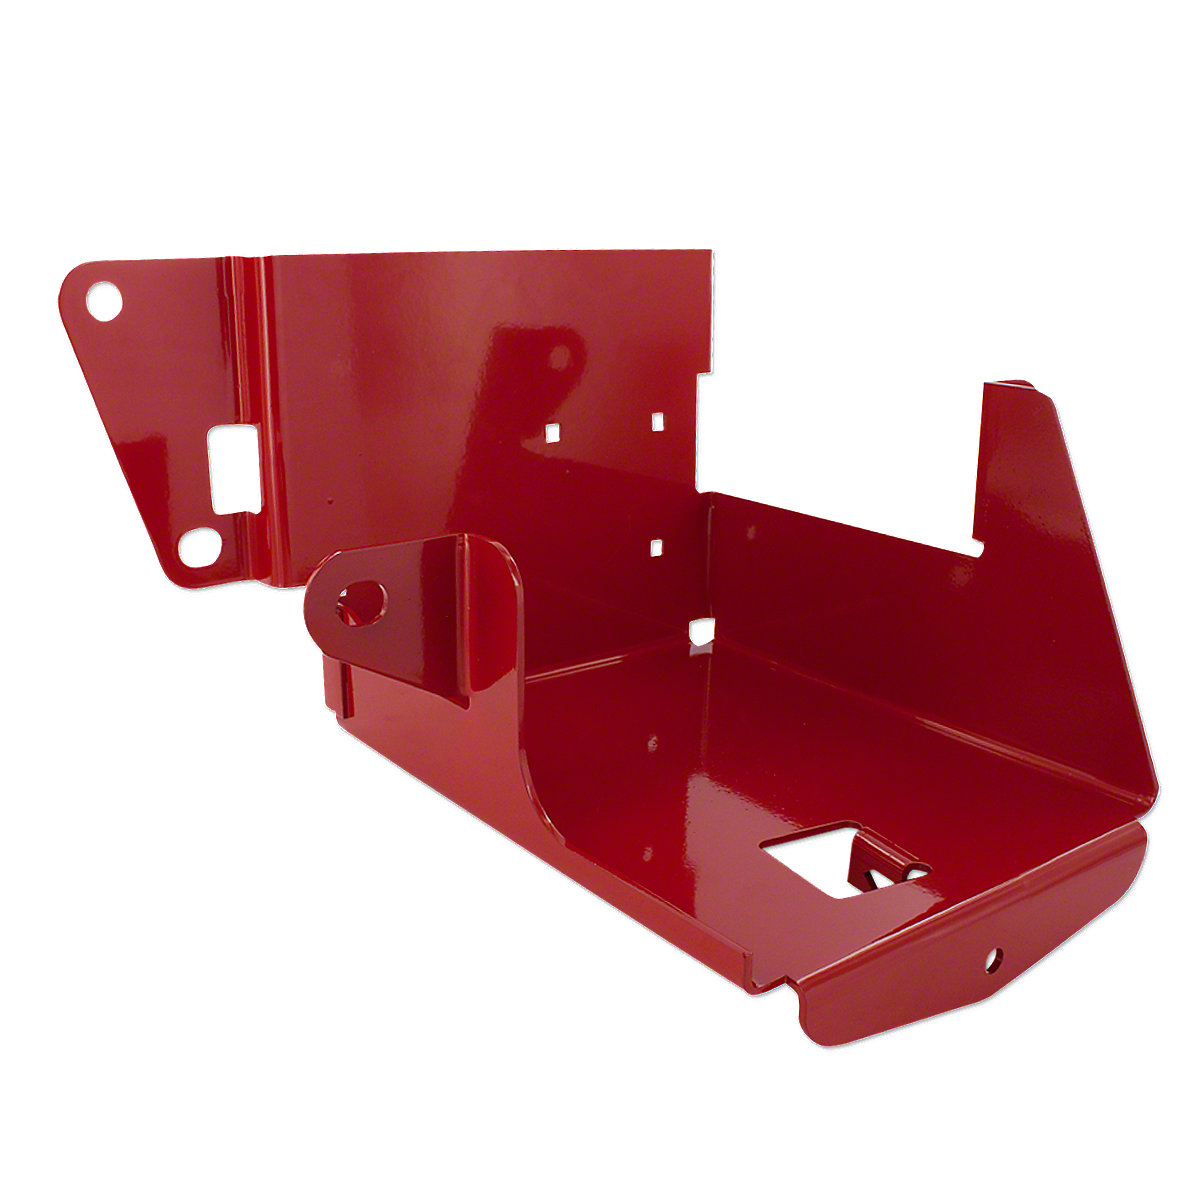 ford jubilee tractor with Fds030 Battery Tray Support Assembly on FDS030 Battery Tray Support Assembly moreover Viewtopic moreover 4545028704 likewise Ford Oil Capacity furthermore Ford 1953 Jubilee 12 Volt Wiring Diagram.